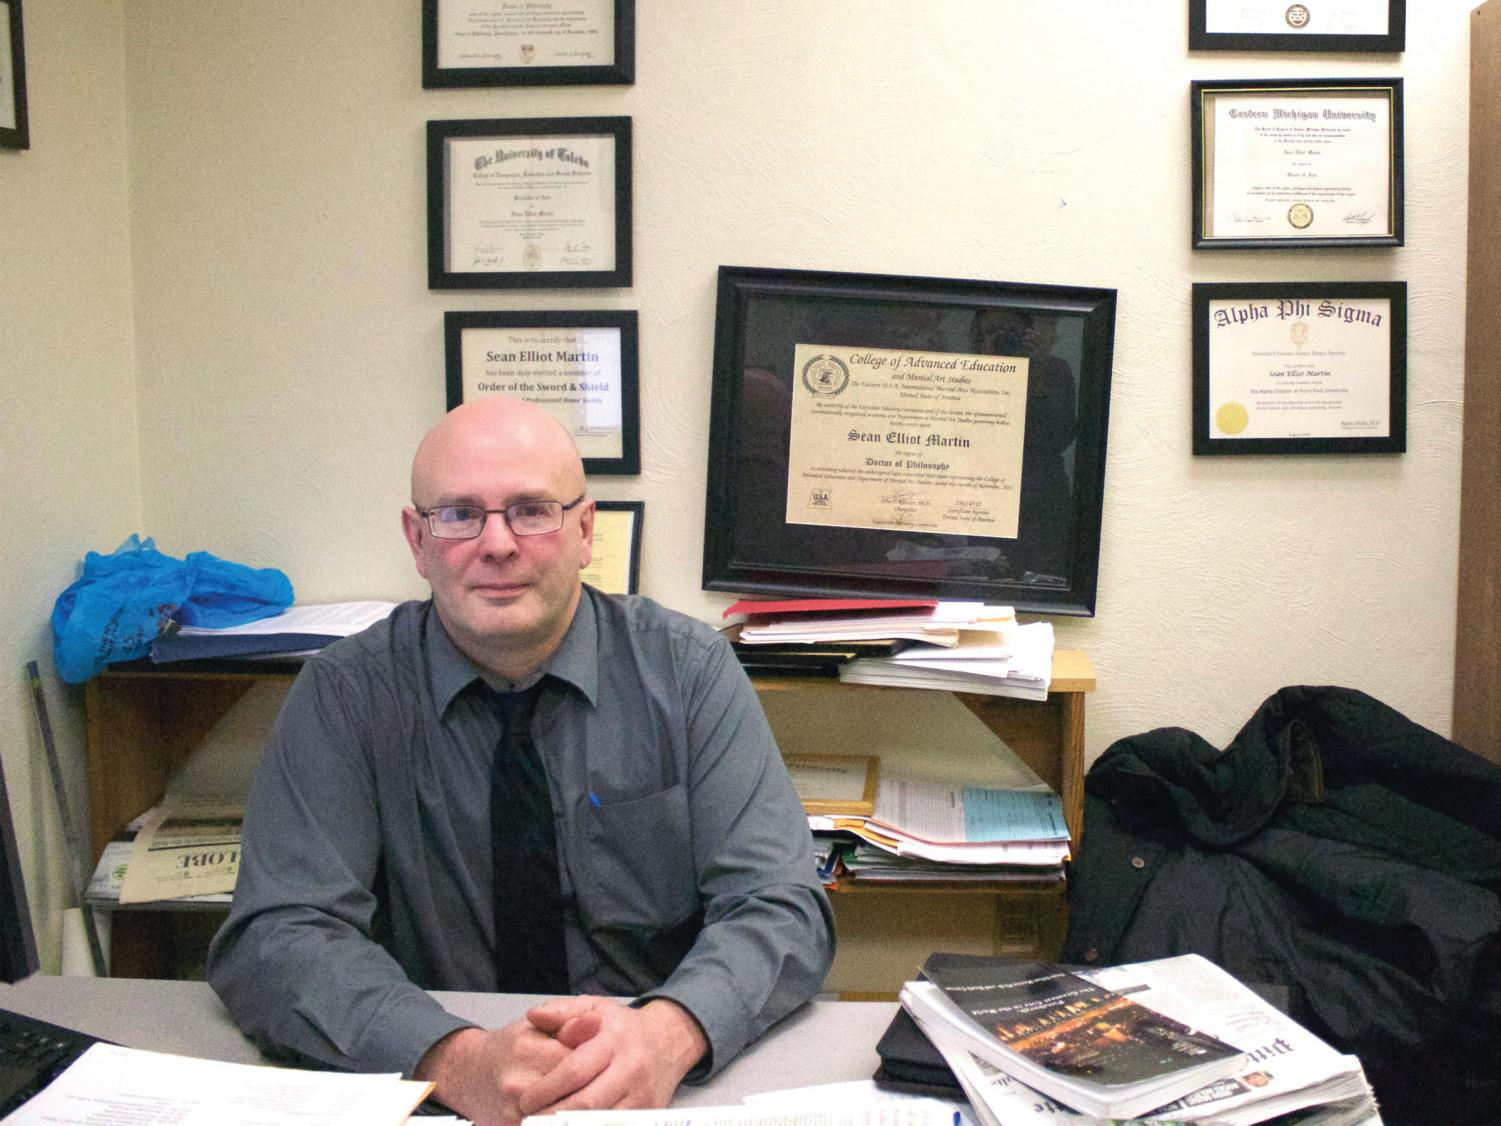 Dr. Martin, pictured here in his office, sits surrounded by his various degrees and awards.